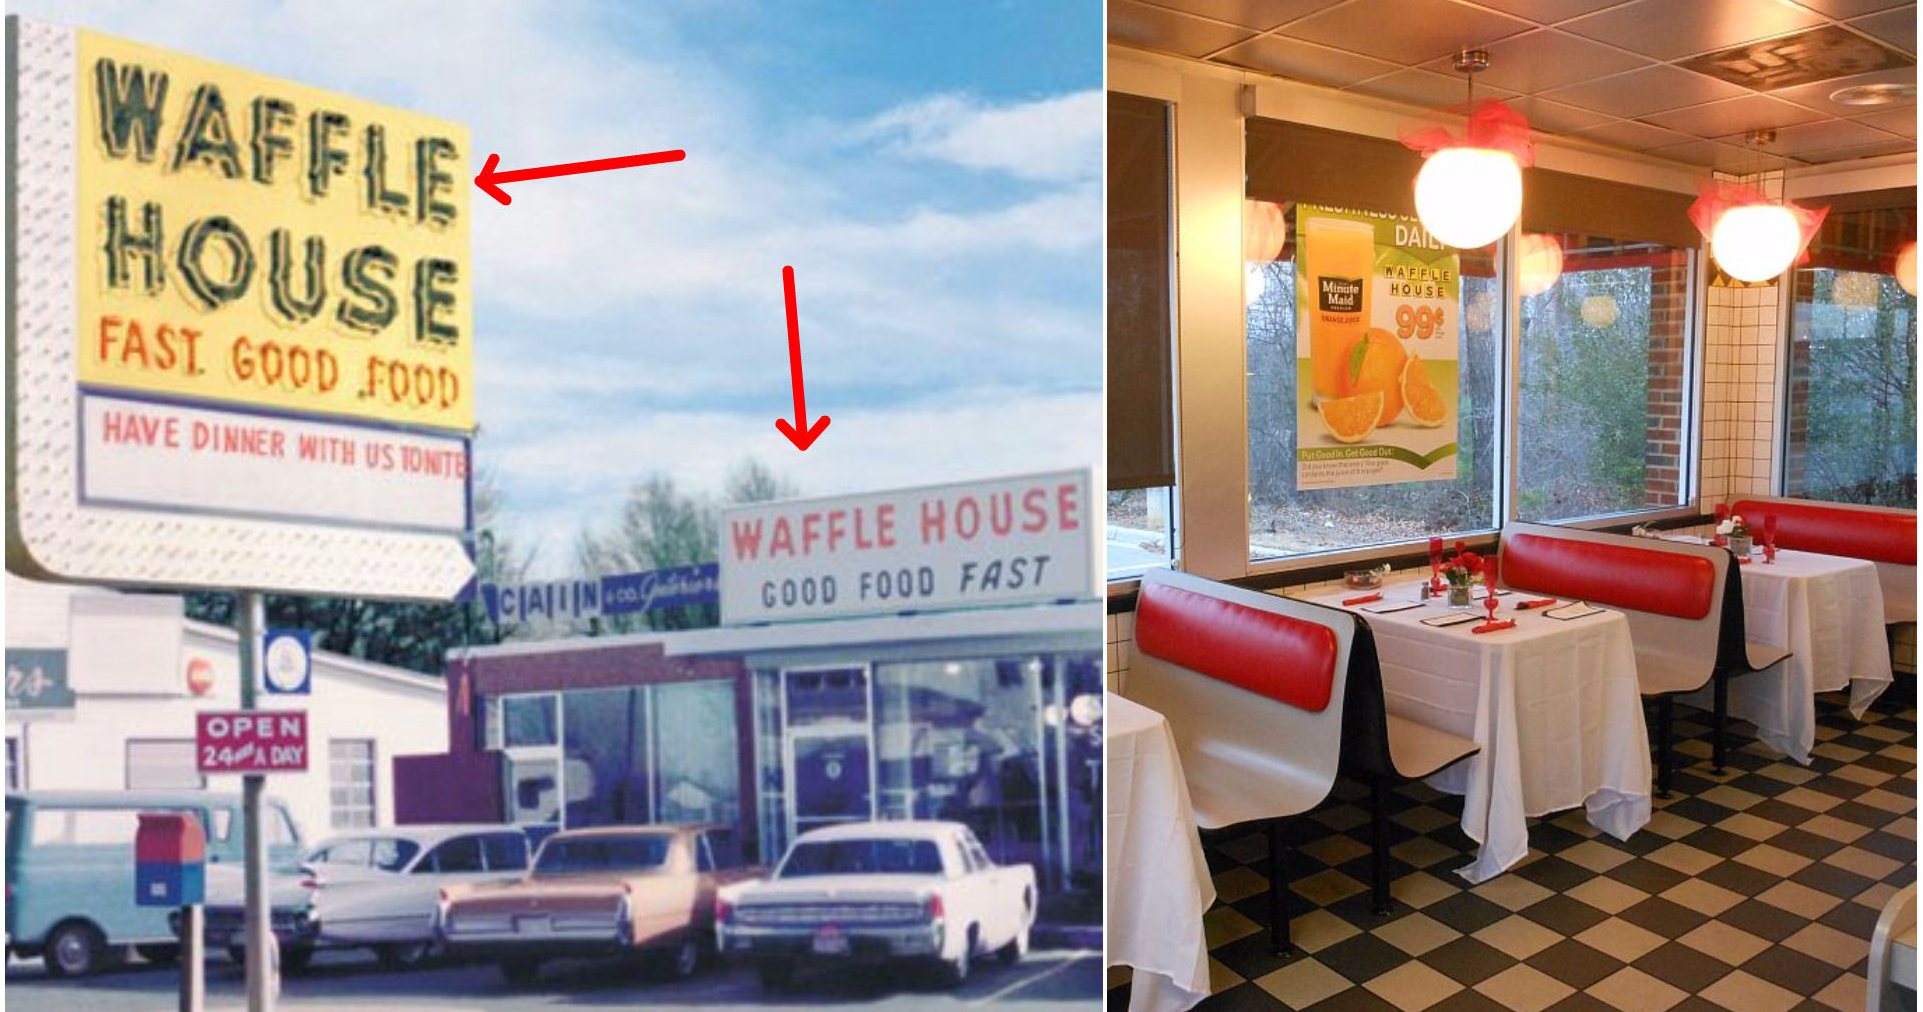 9 Tasty Facts About Waffle House The Restaurant That Never Closes